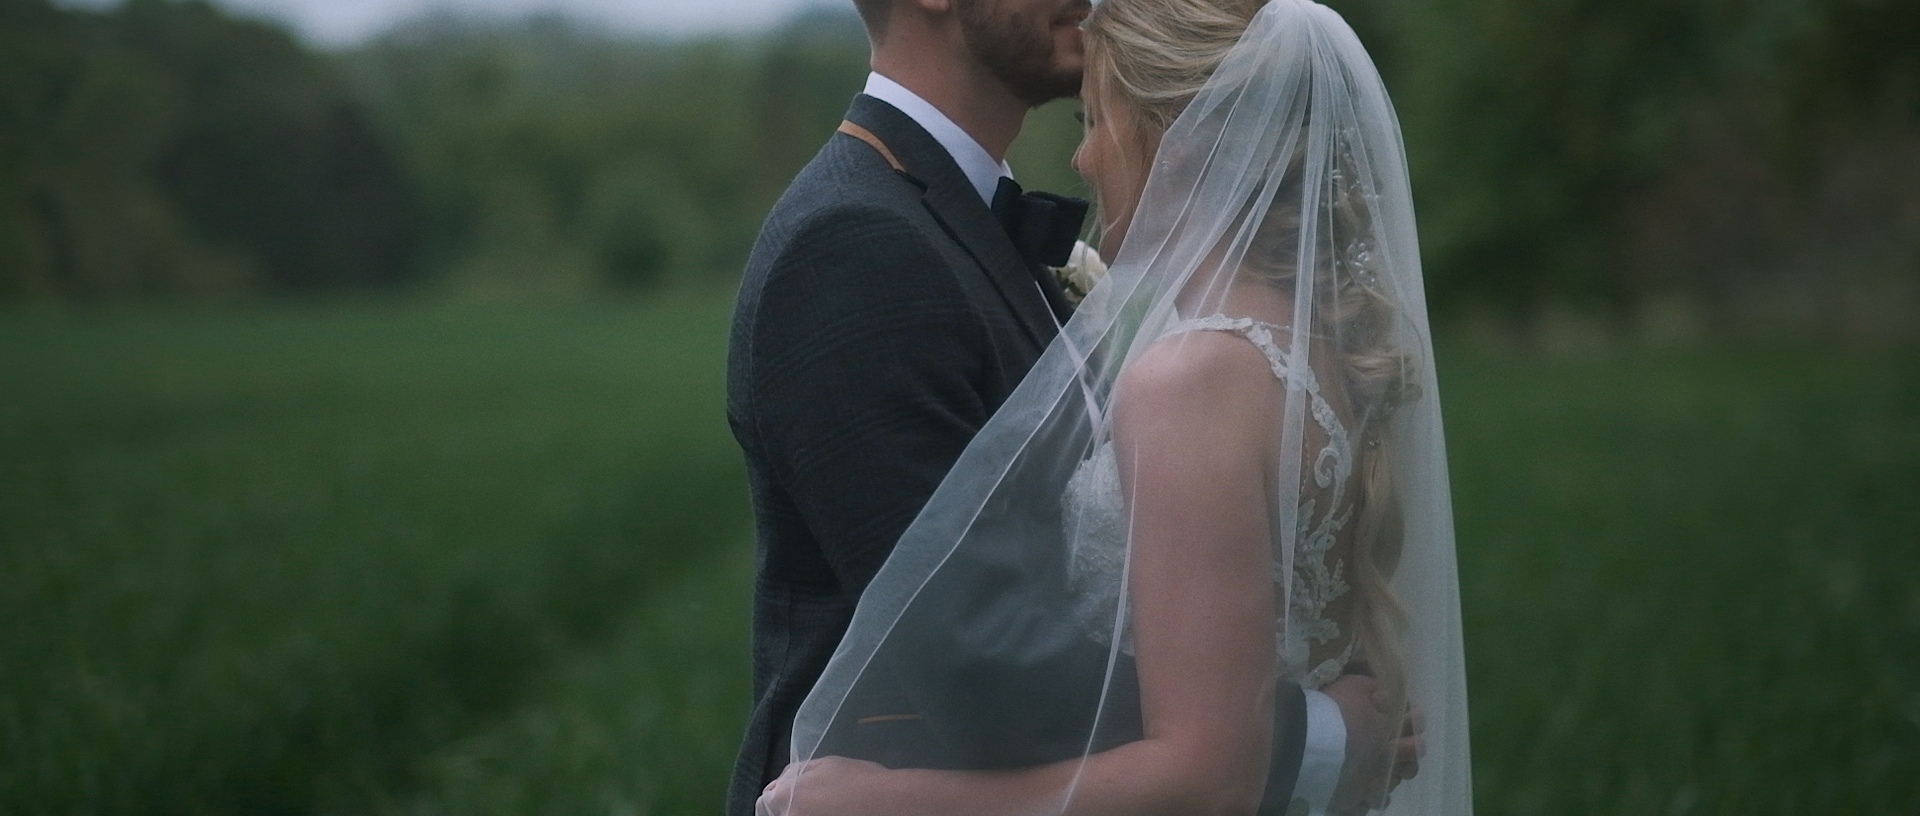 moon+river+wedding+videographer+north+east+luxury+brinkburn+priory